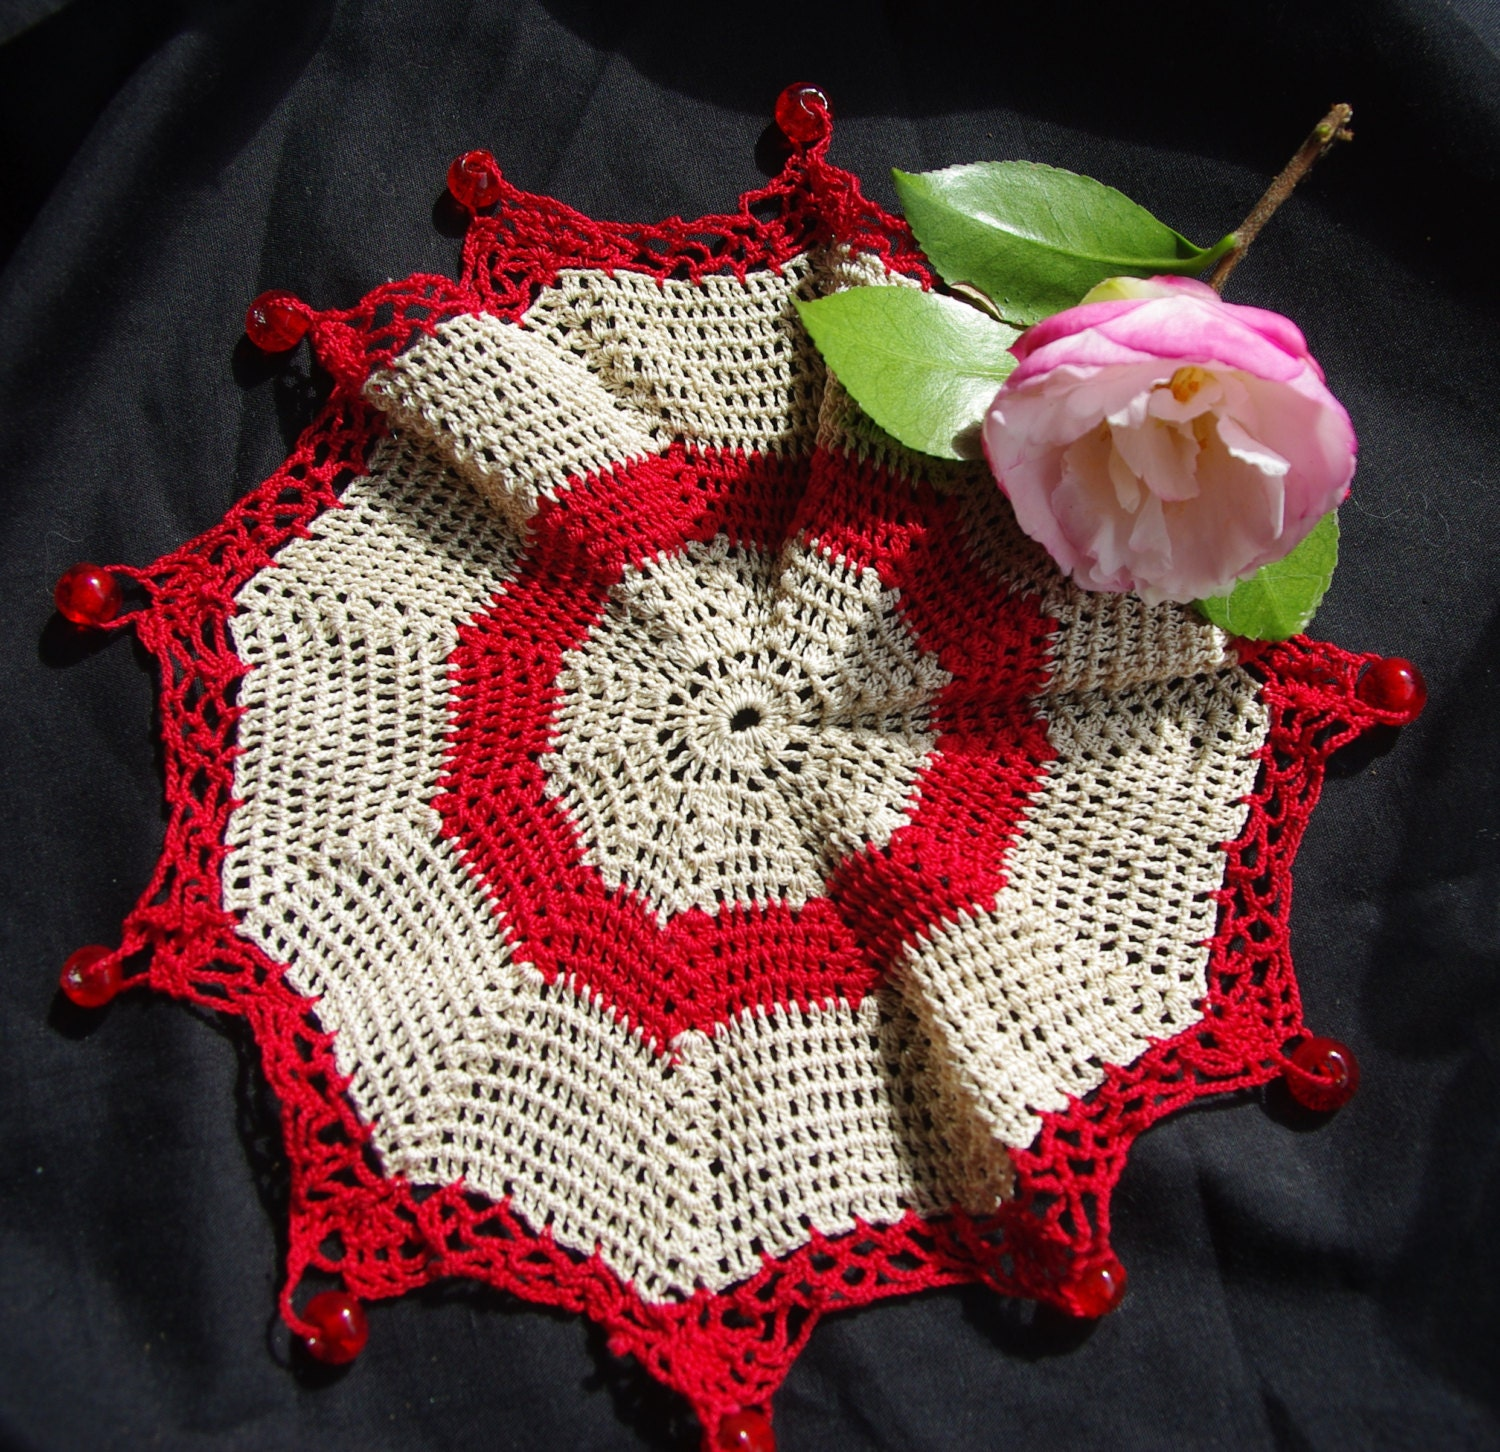 Antique Crocheted Milk Jug Cover. Cream & Red Glass Beads. Afternoon Tea Party